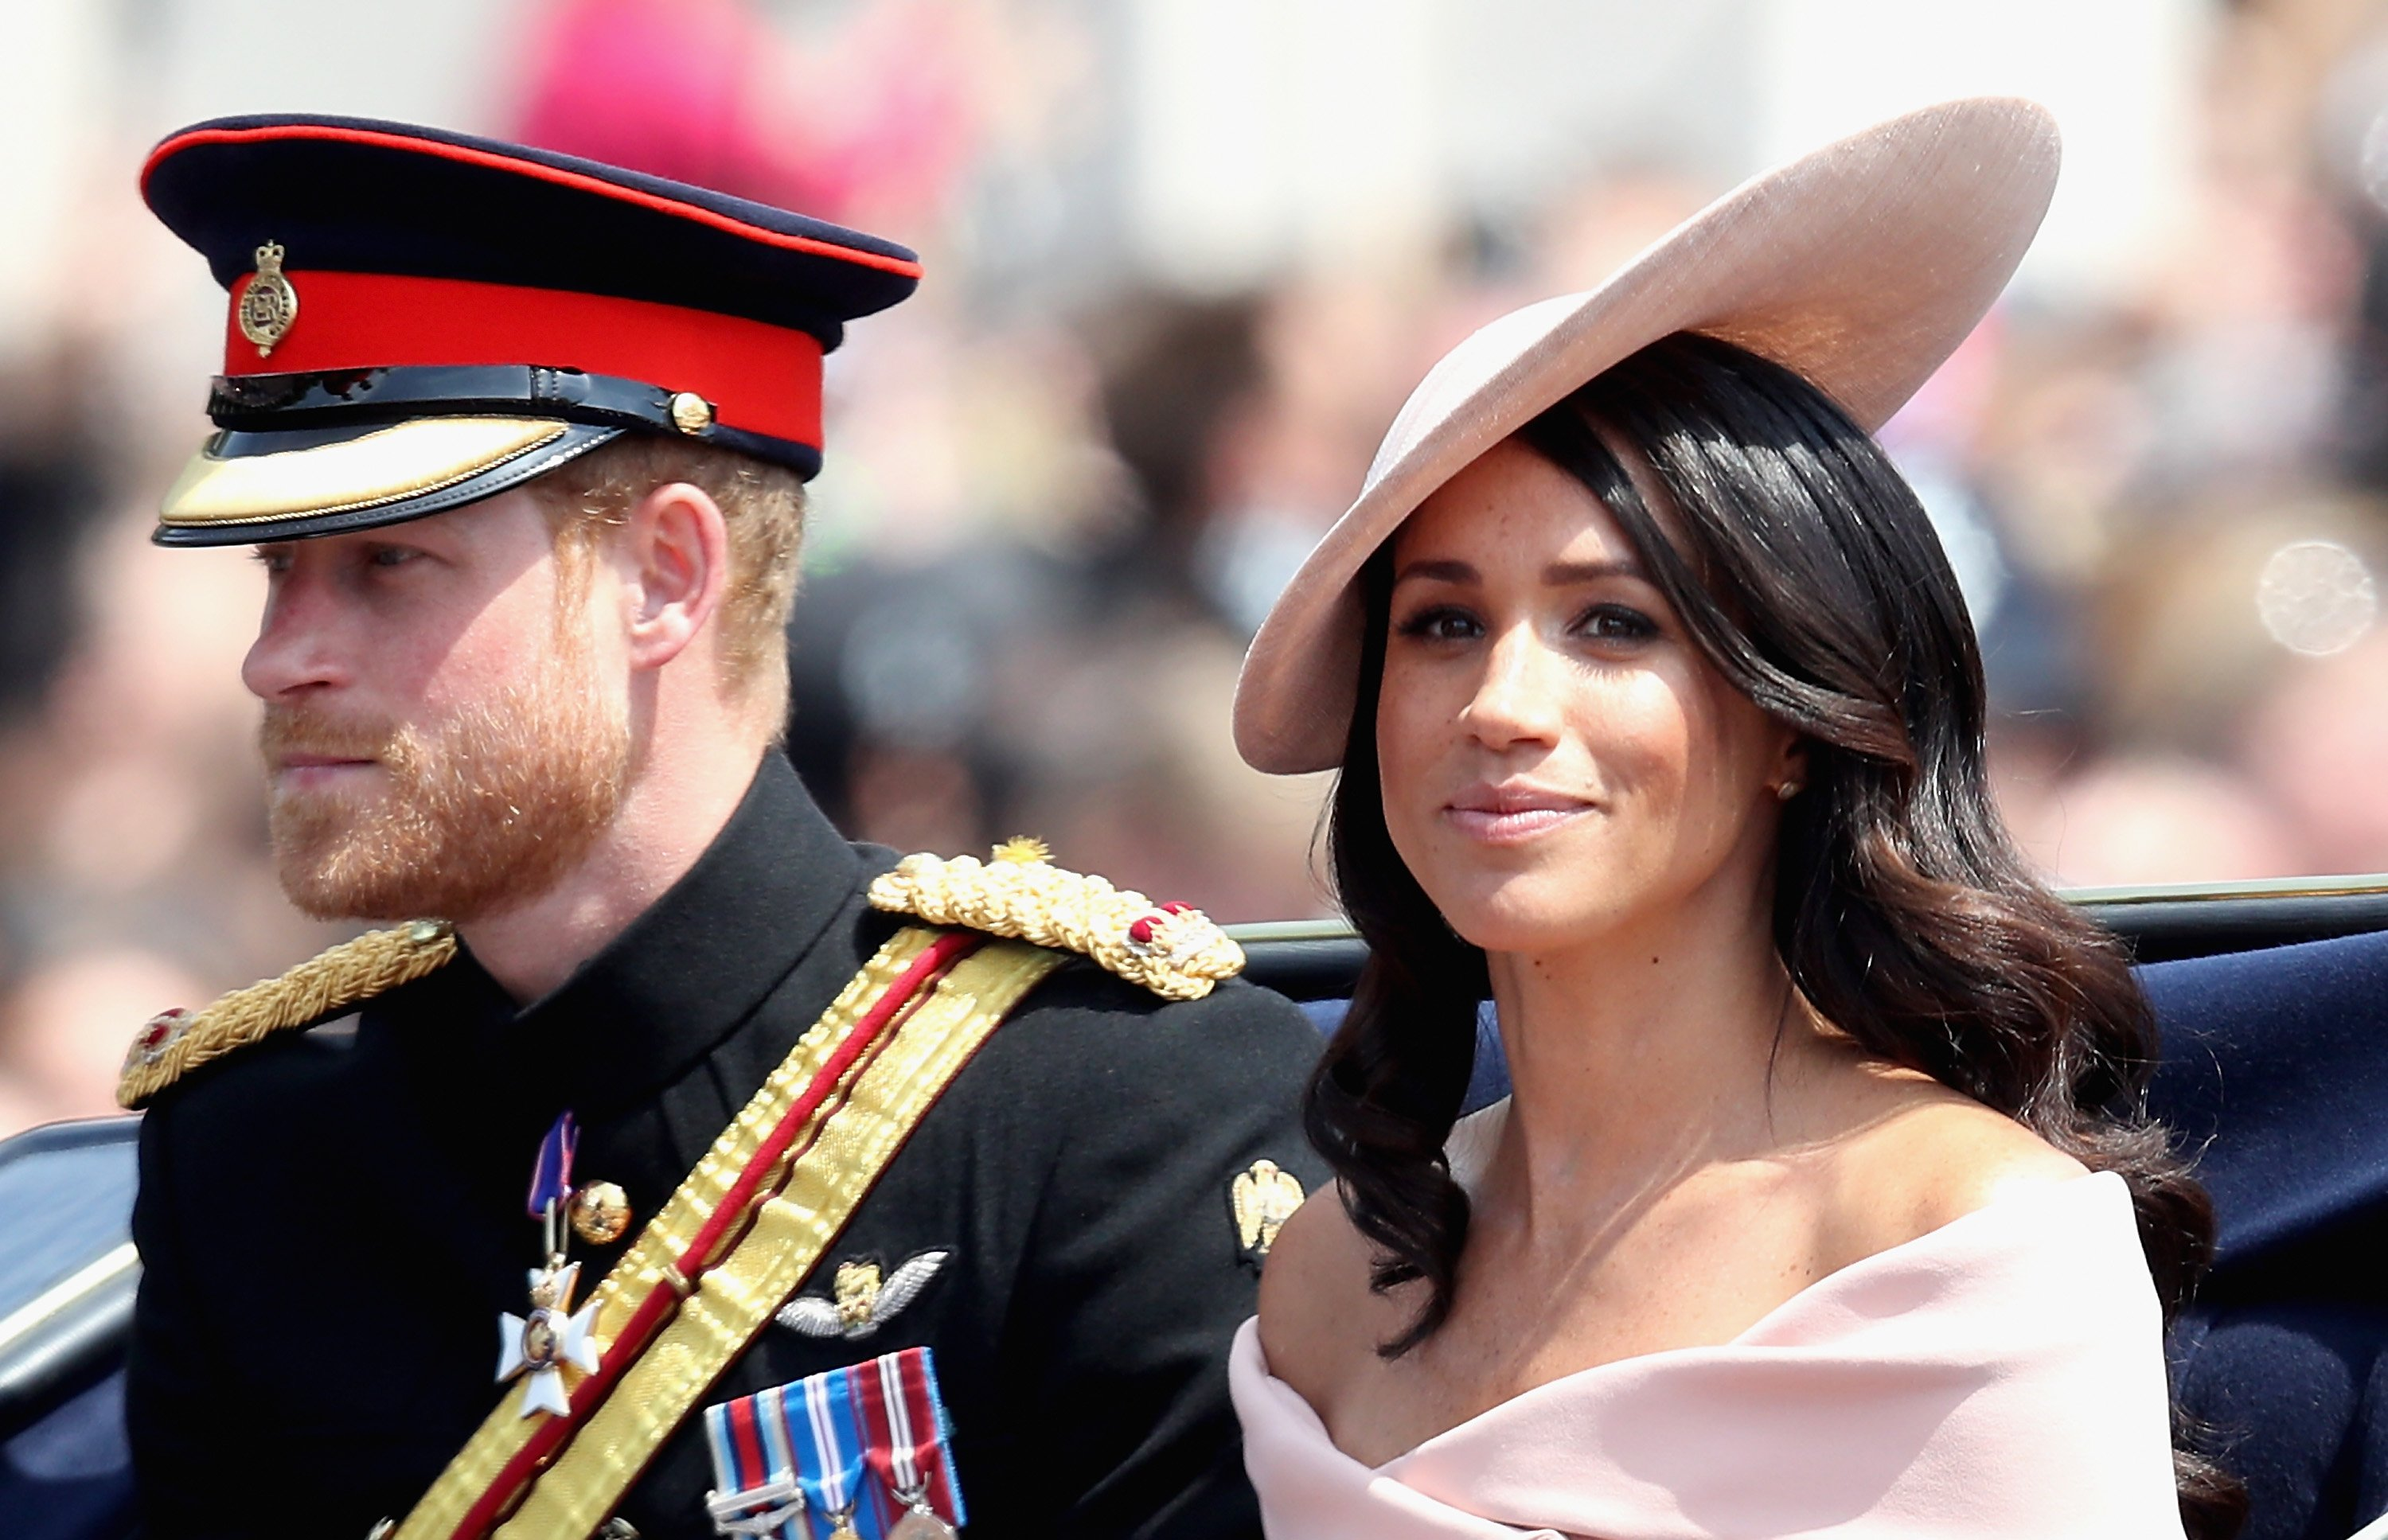 Image Credits: Getty Images / Chris Jackson    Meghan, Duchess of Sussex and Prince Harry, Duke of Sussex during Trooping The Colour on the Mall on June 9, 2018 in London, England. The annual ceremony involving over 1400 guardsmen and cavalry, is believed to have first been performed during the reign of King Charles II. The parade marks the official birthday of the Sovereign, even though the Queen's actual birthday is on April 21st.